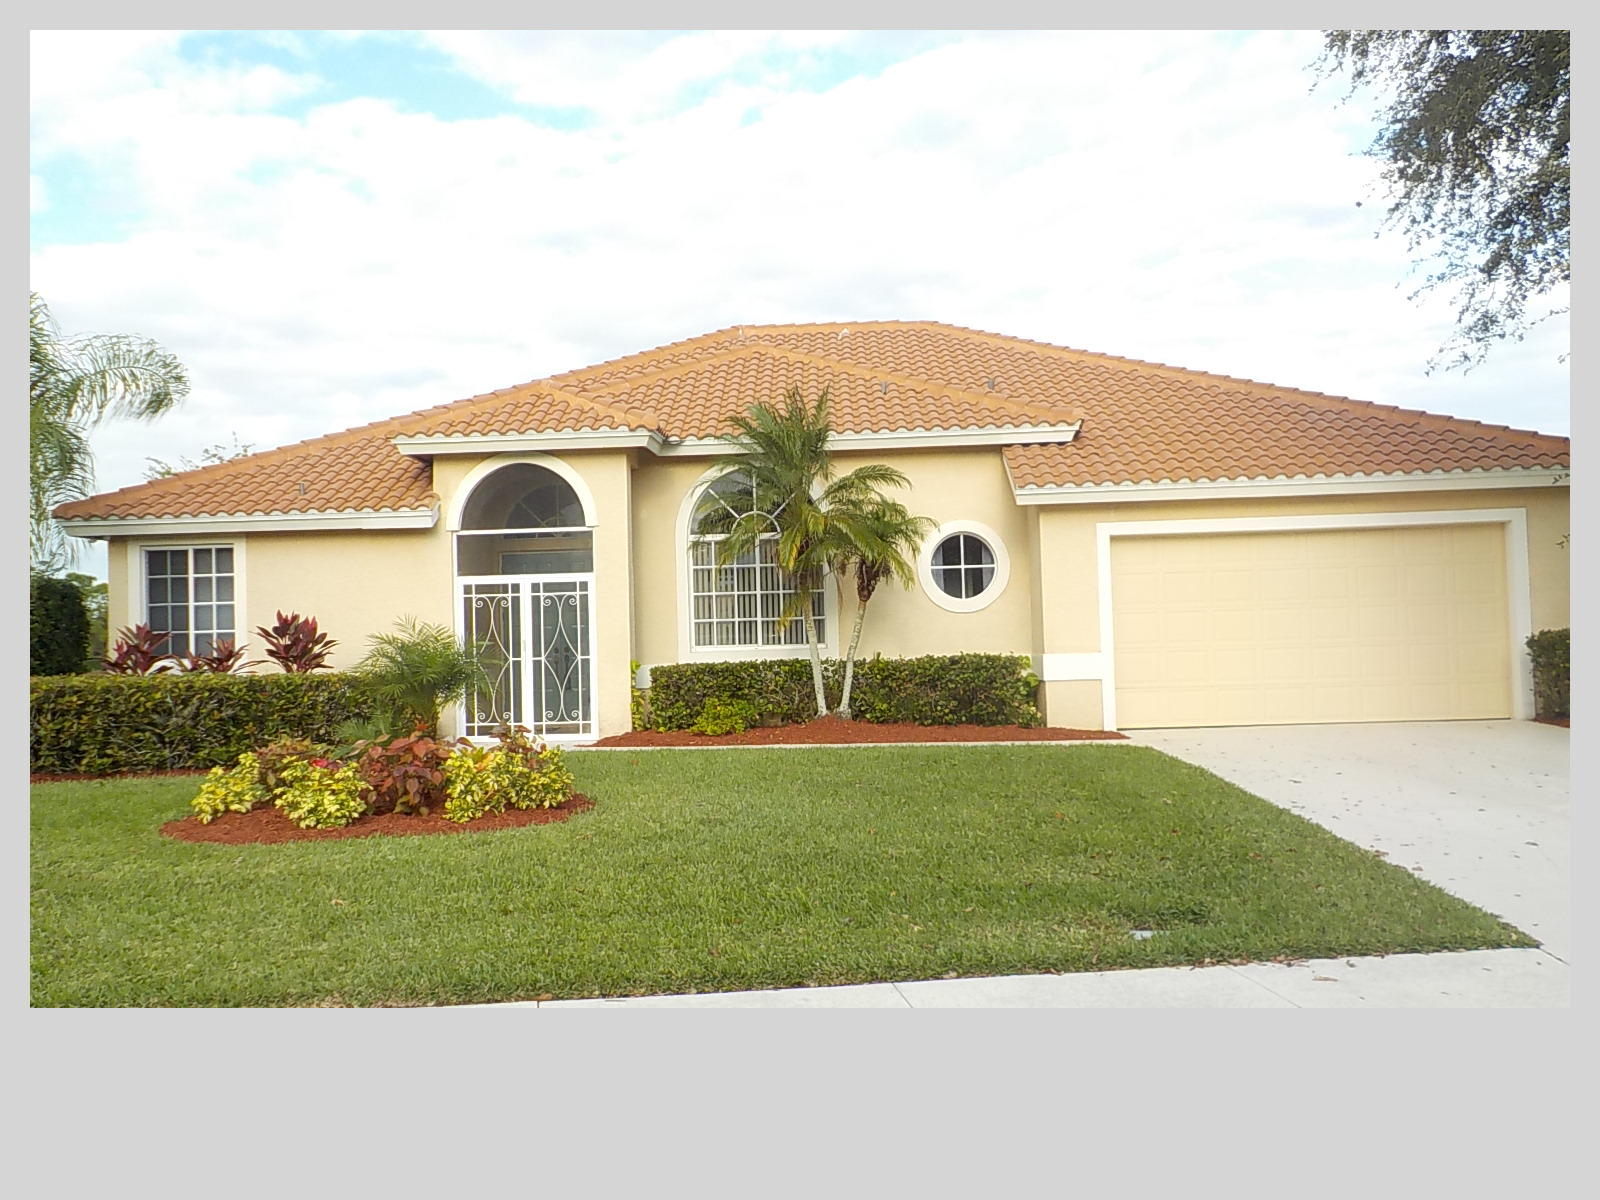 1265 Sw Maplewood Drive, Port Saint Lucie, FL 34986